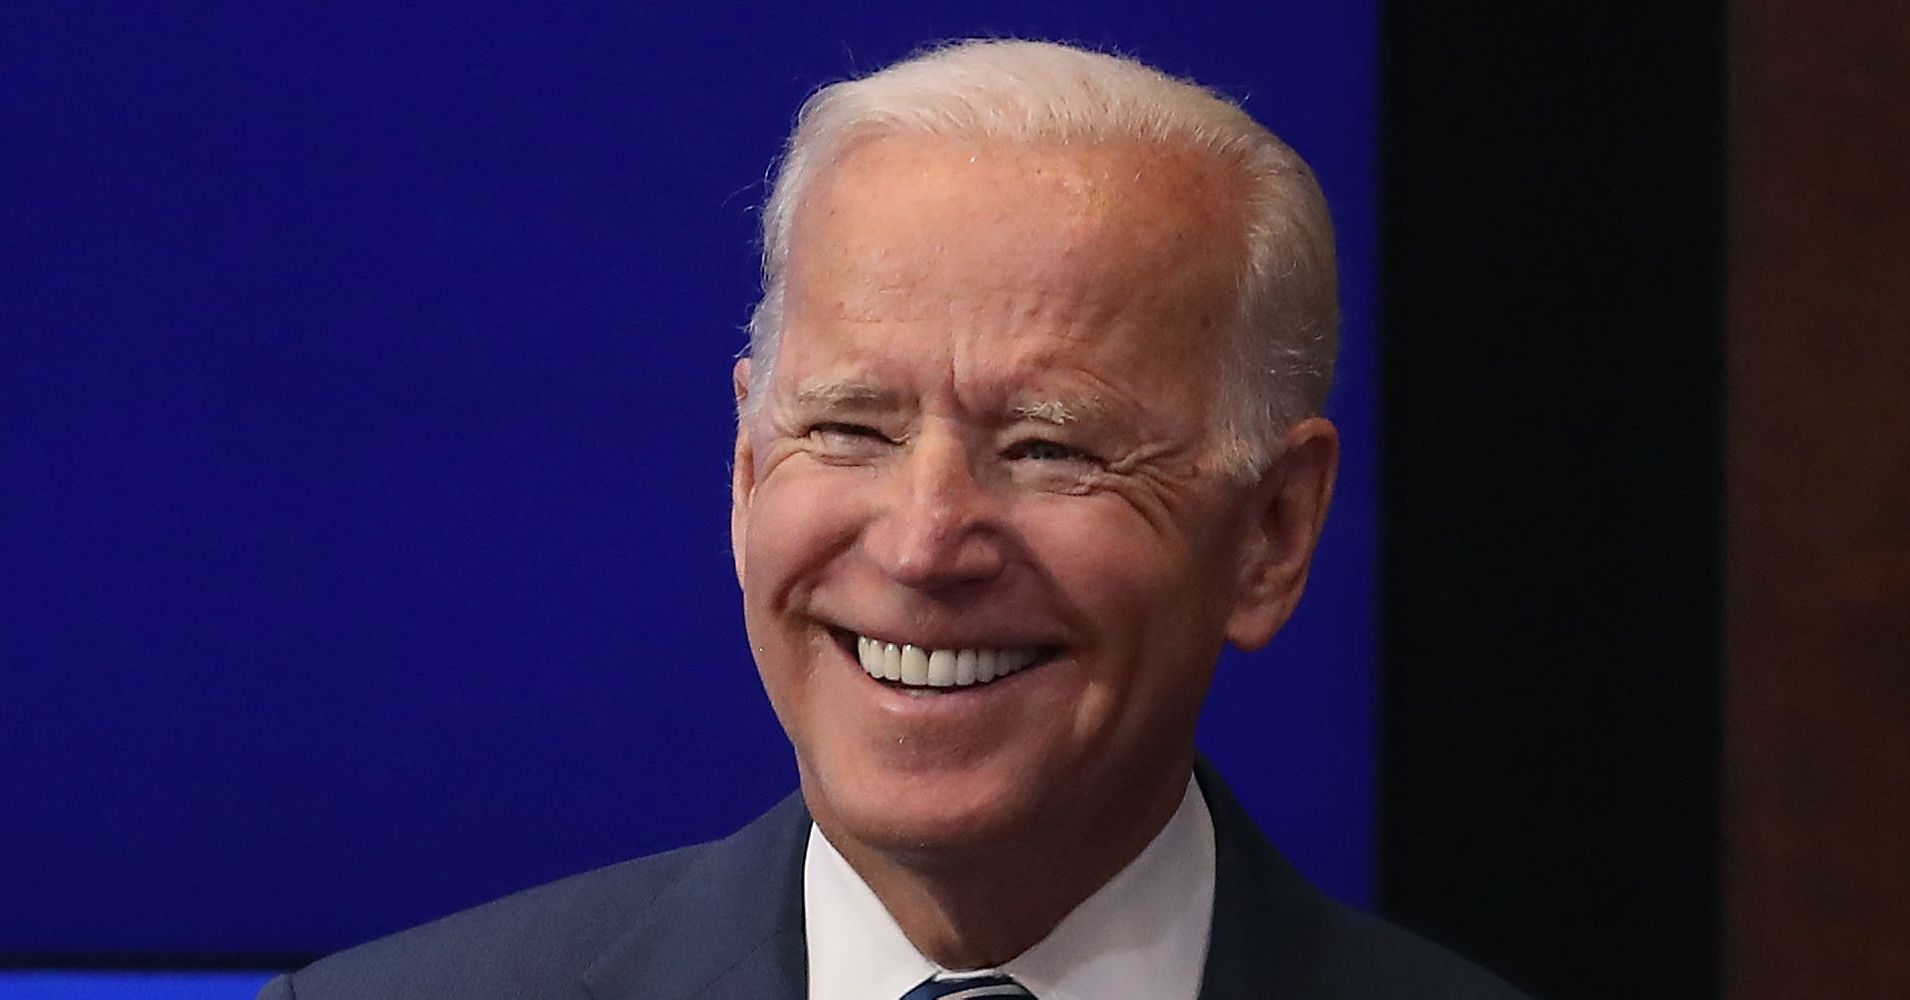 Joe Biden Just Adopted An Adorable Shelter Dog